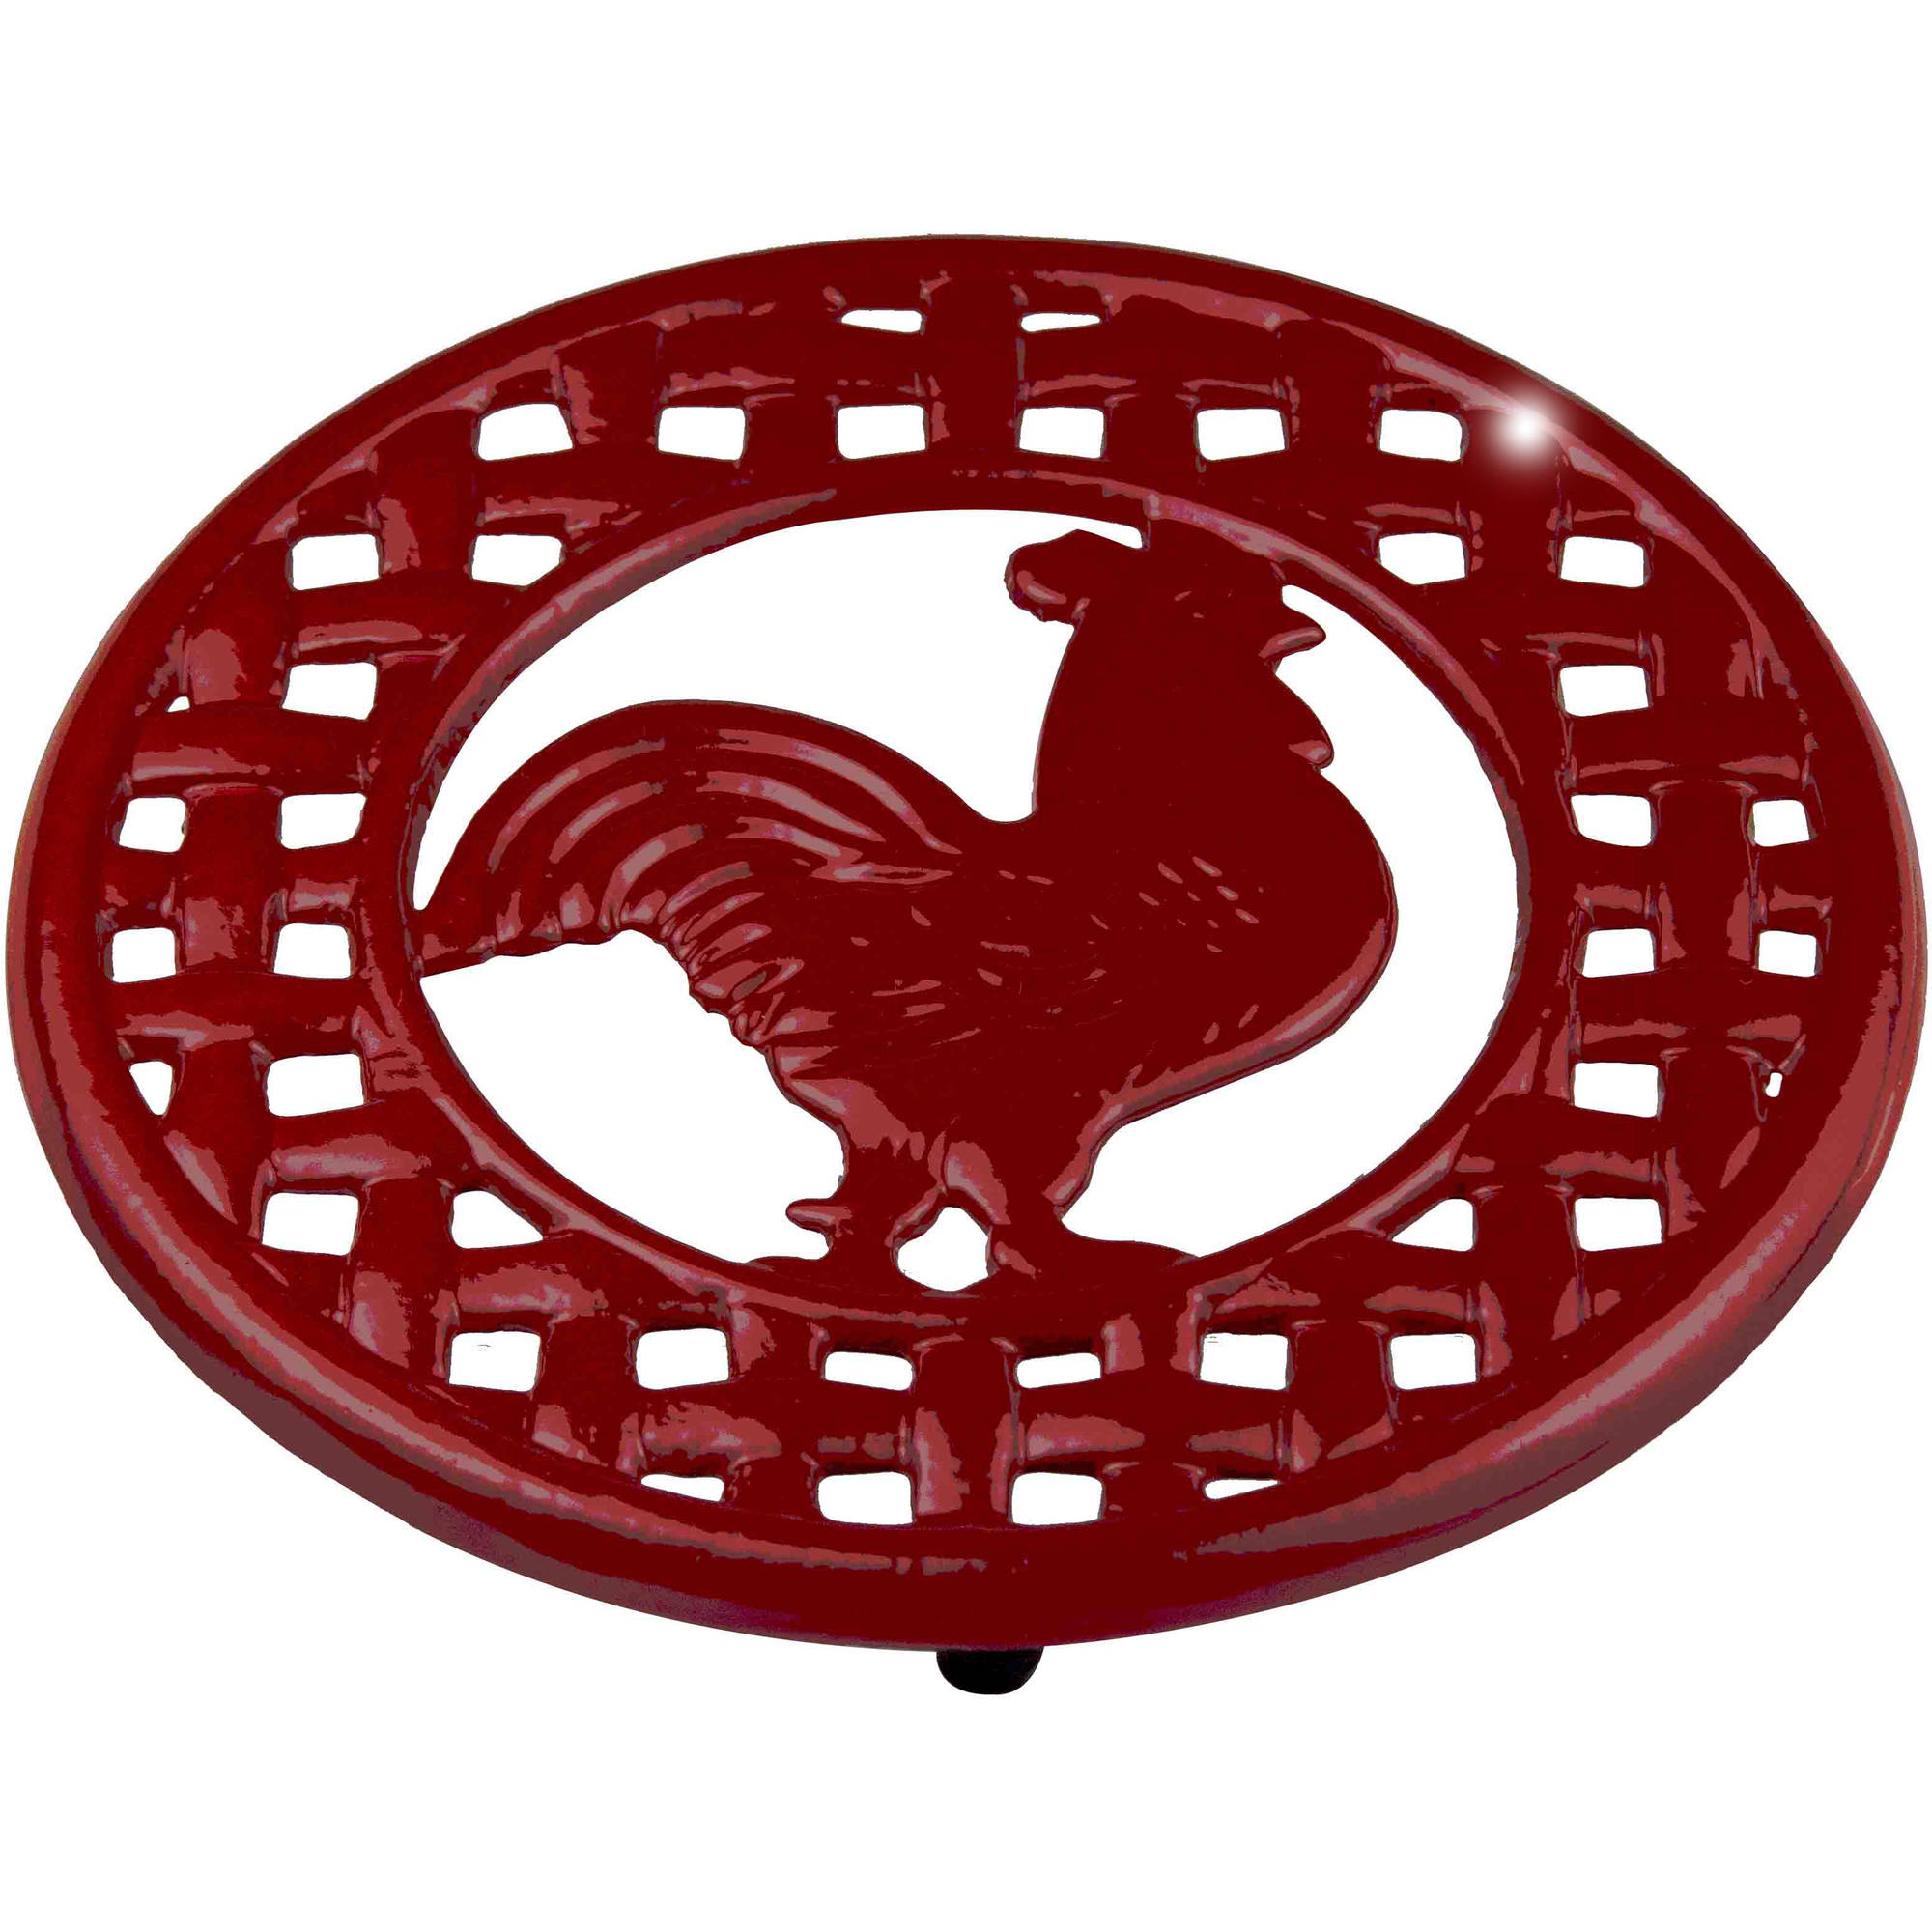 Cast Iron Rooster Trivet, Red